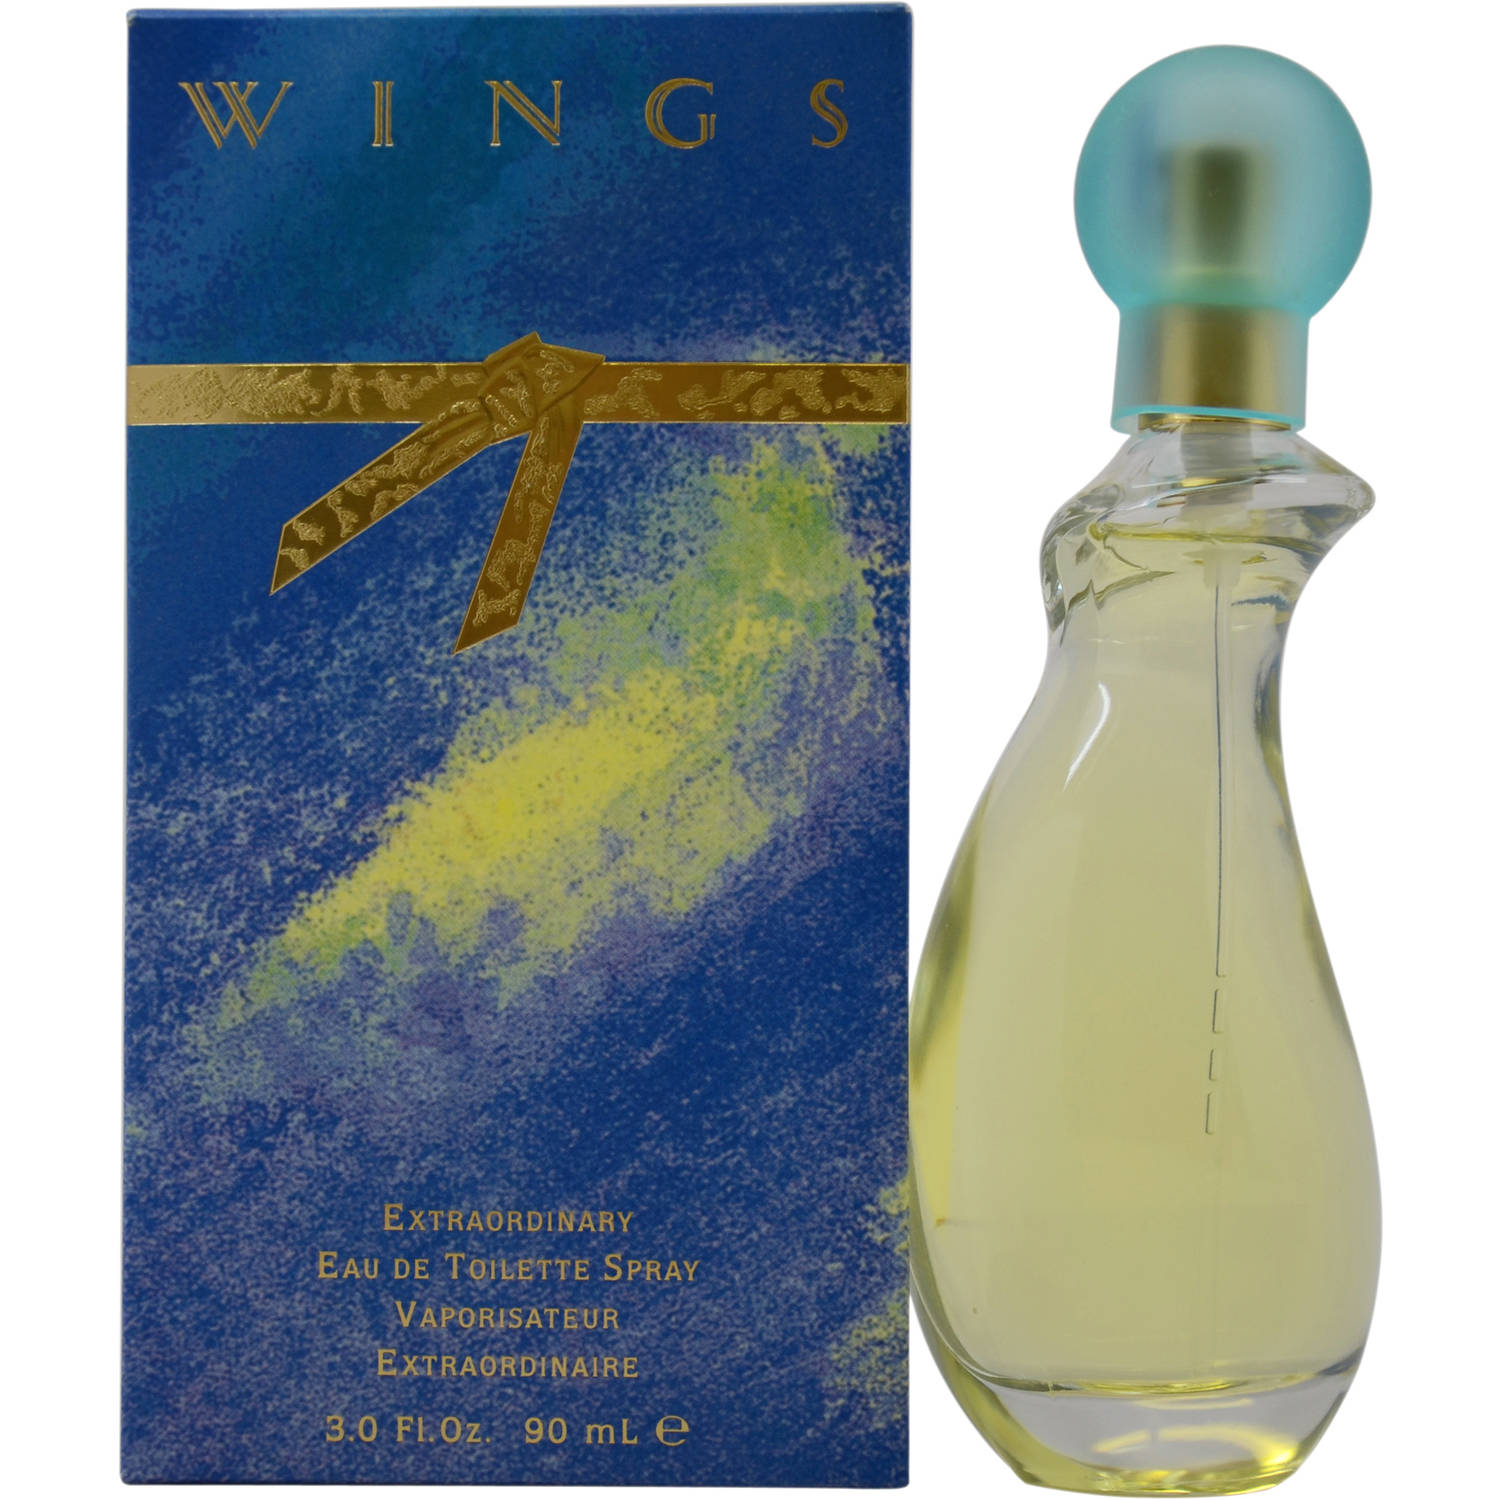 Wings for Women Eau de Toilette Spray, 3 fl oz